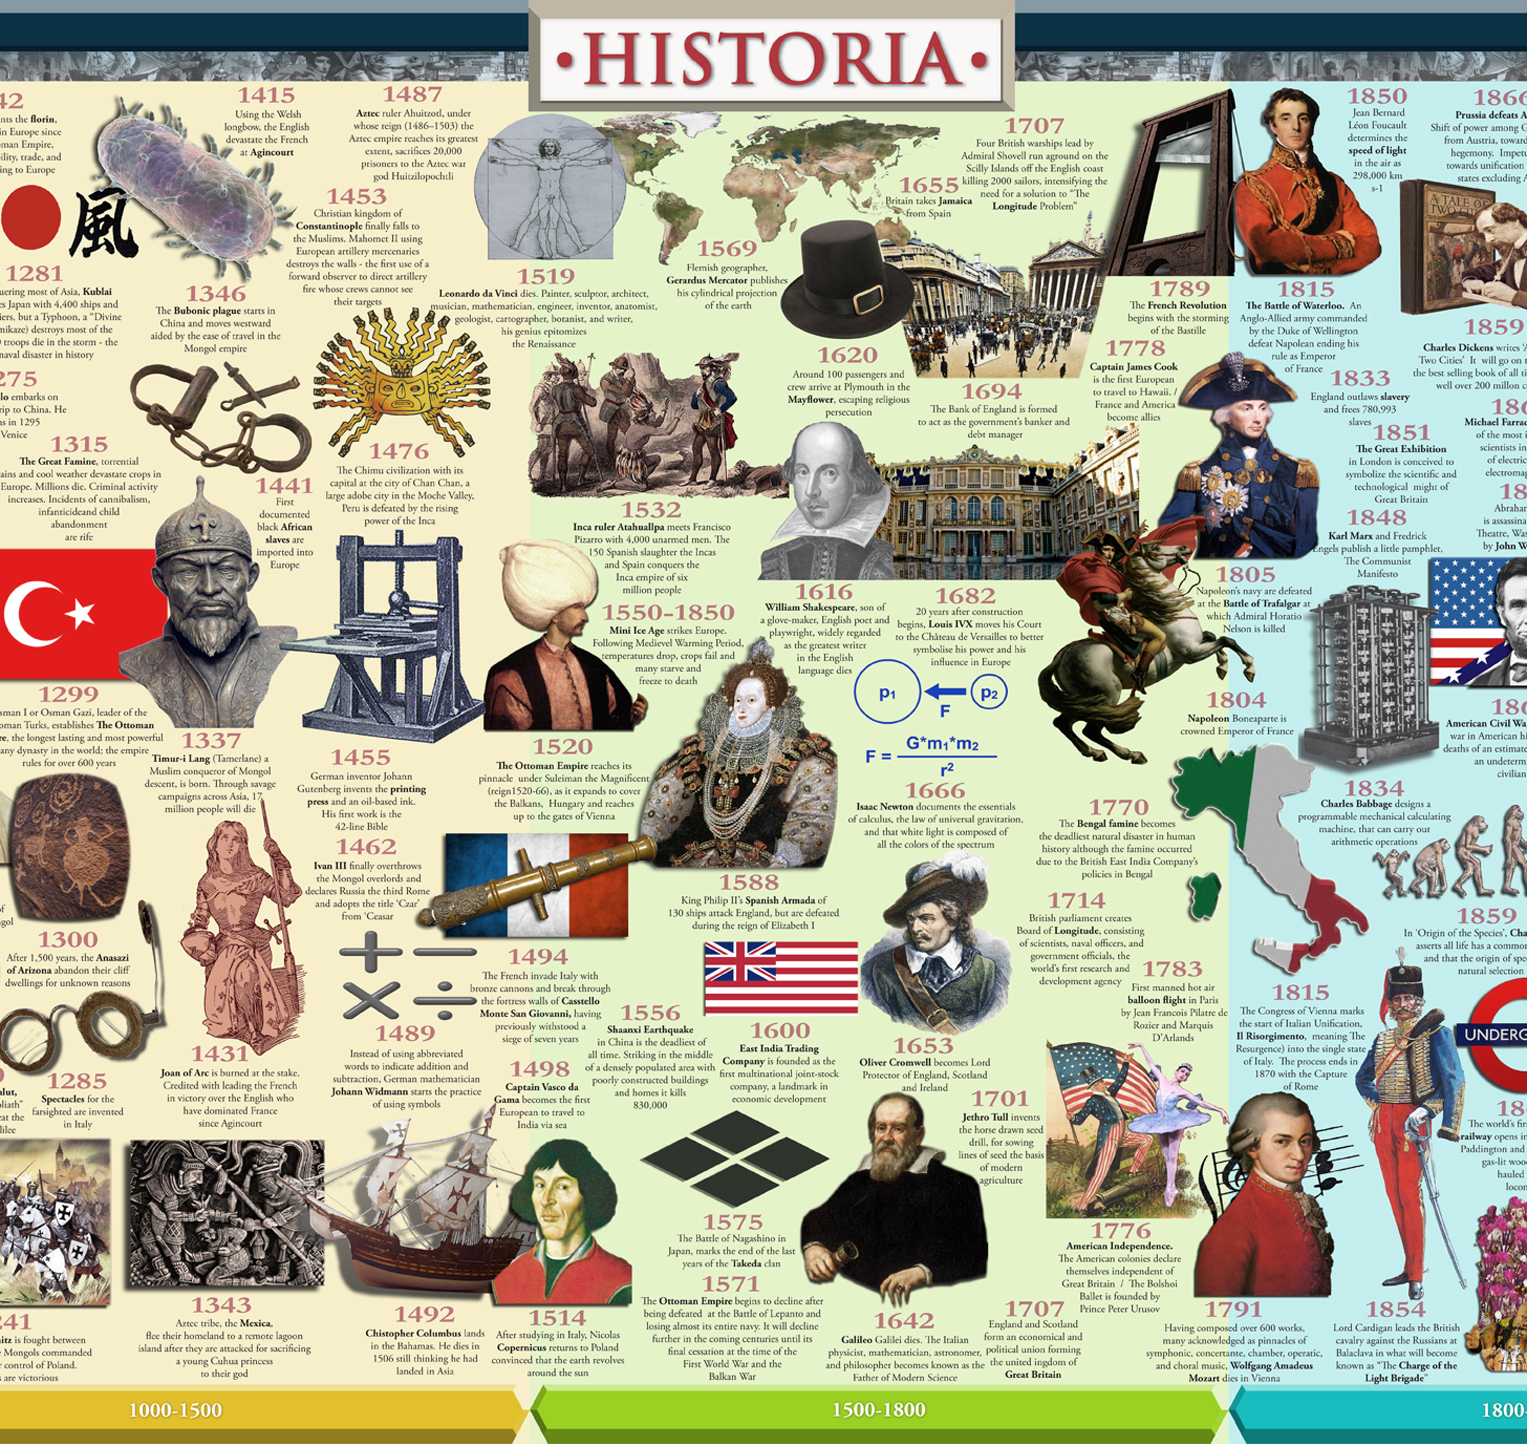 Historical Canadian Events From 1980 2015 Timeline: World History Timeline, Main Section